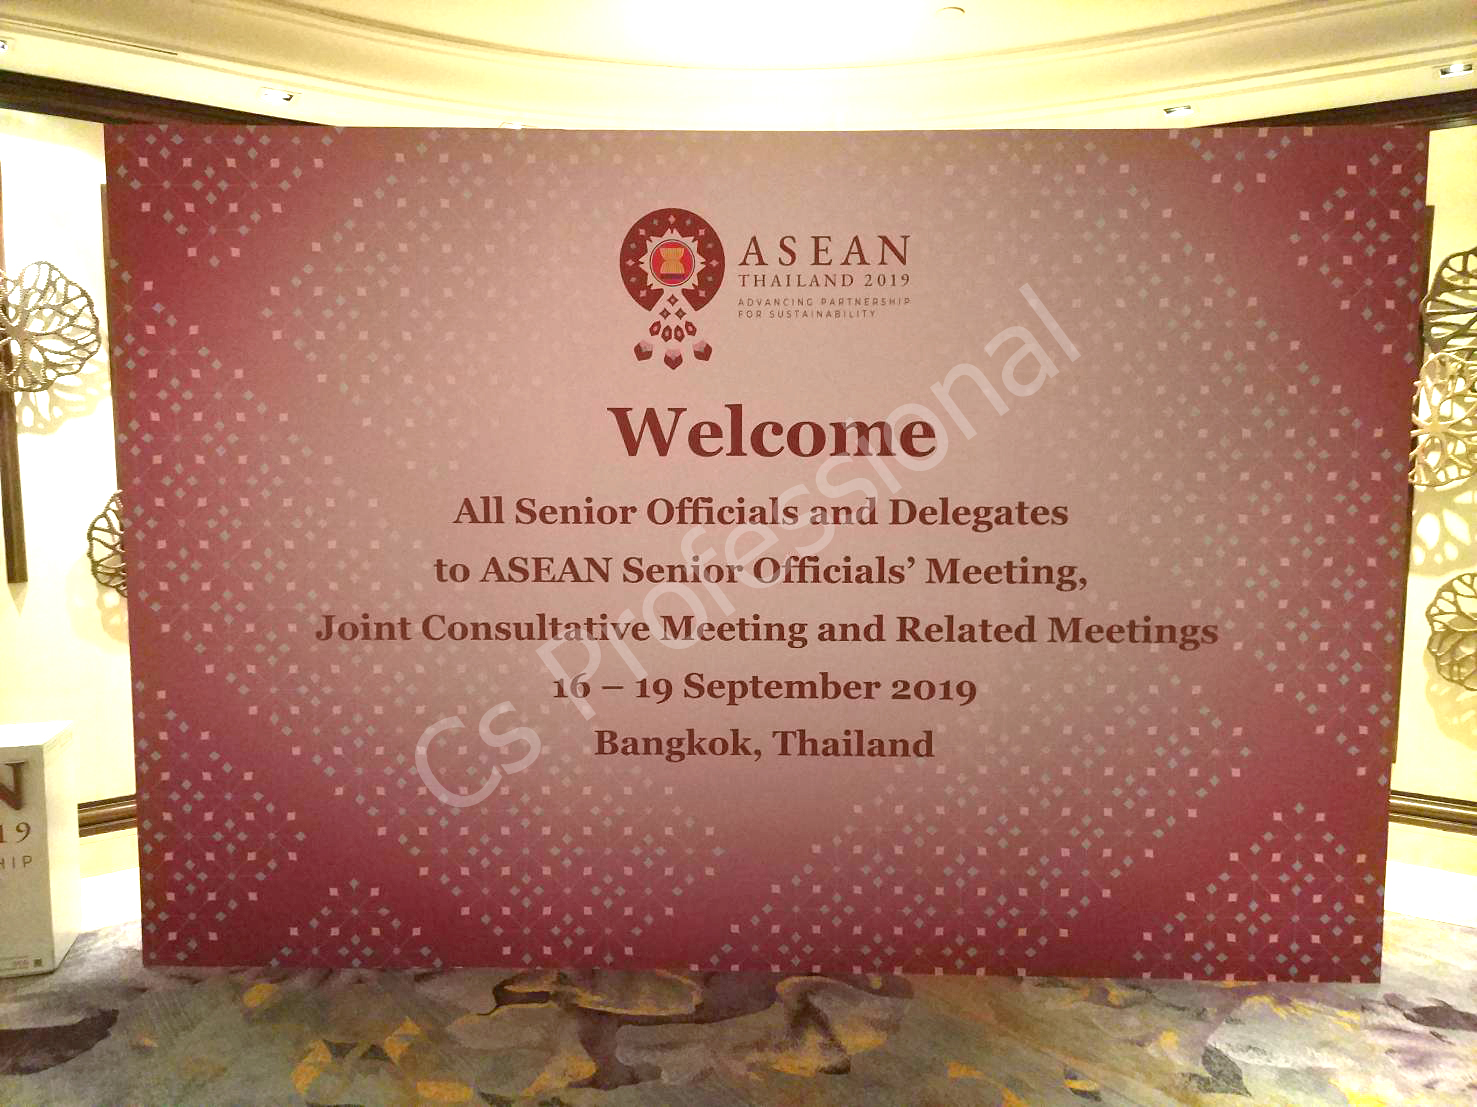 ASEAN Senior Officals's Meeting 2019